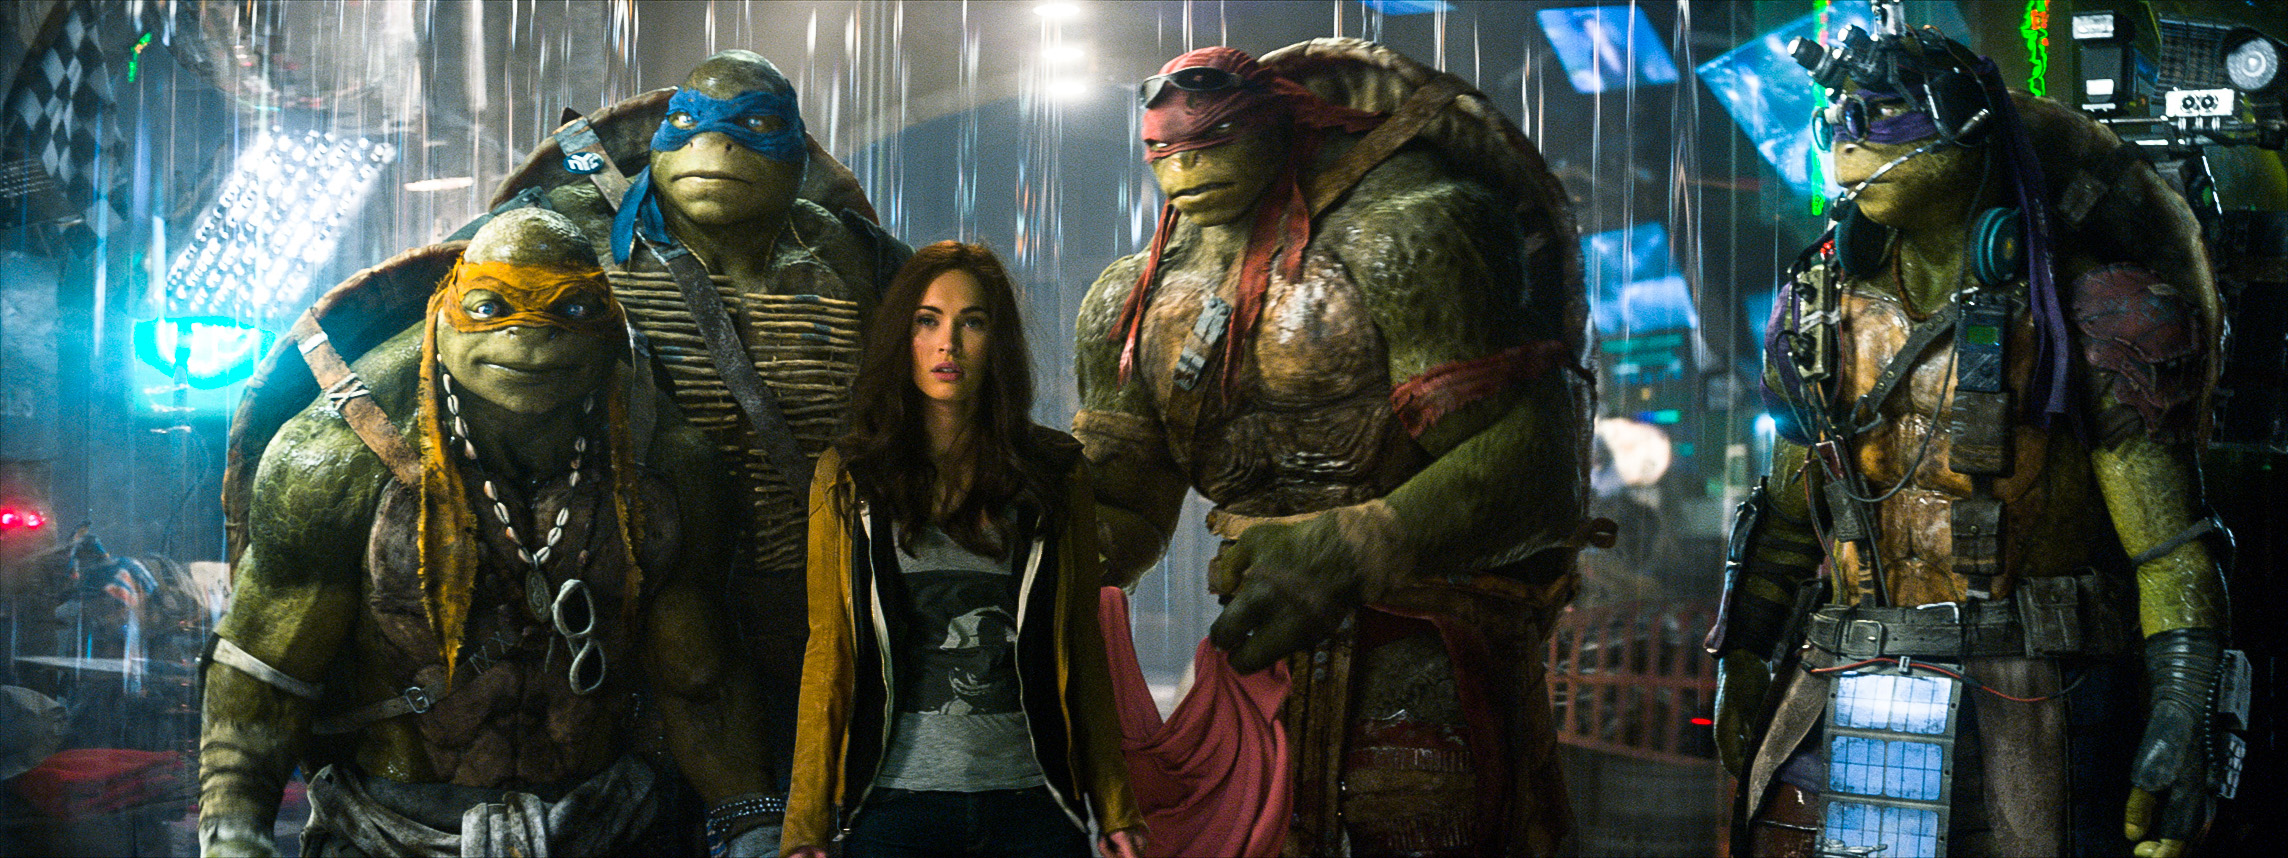 Megan Fox stars as April O'Neil in Teenage Mutant Ninja Turtles alongside (L-R) Michelangelo, Leonardo, Raphael and Donatello.